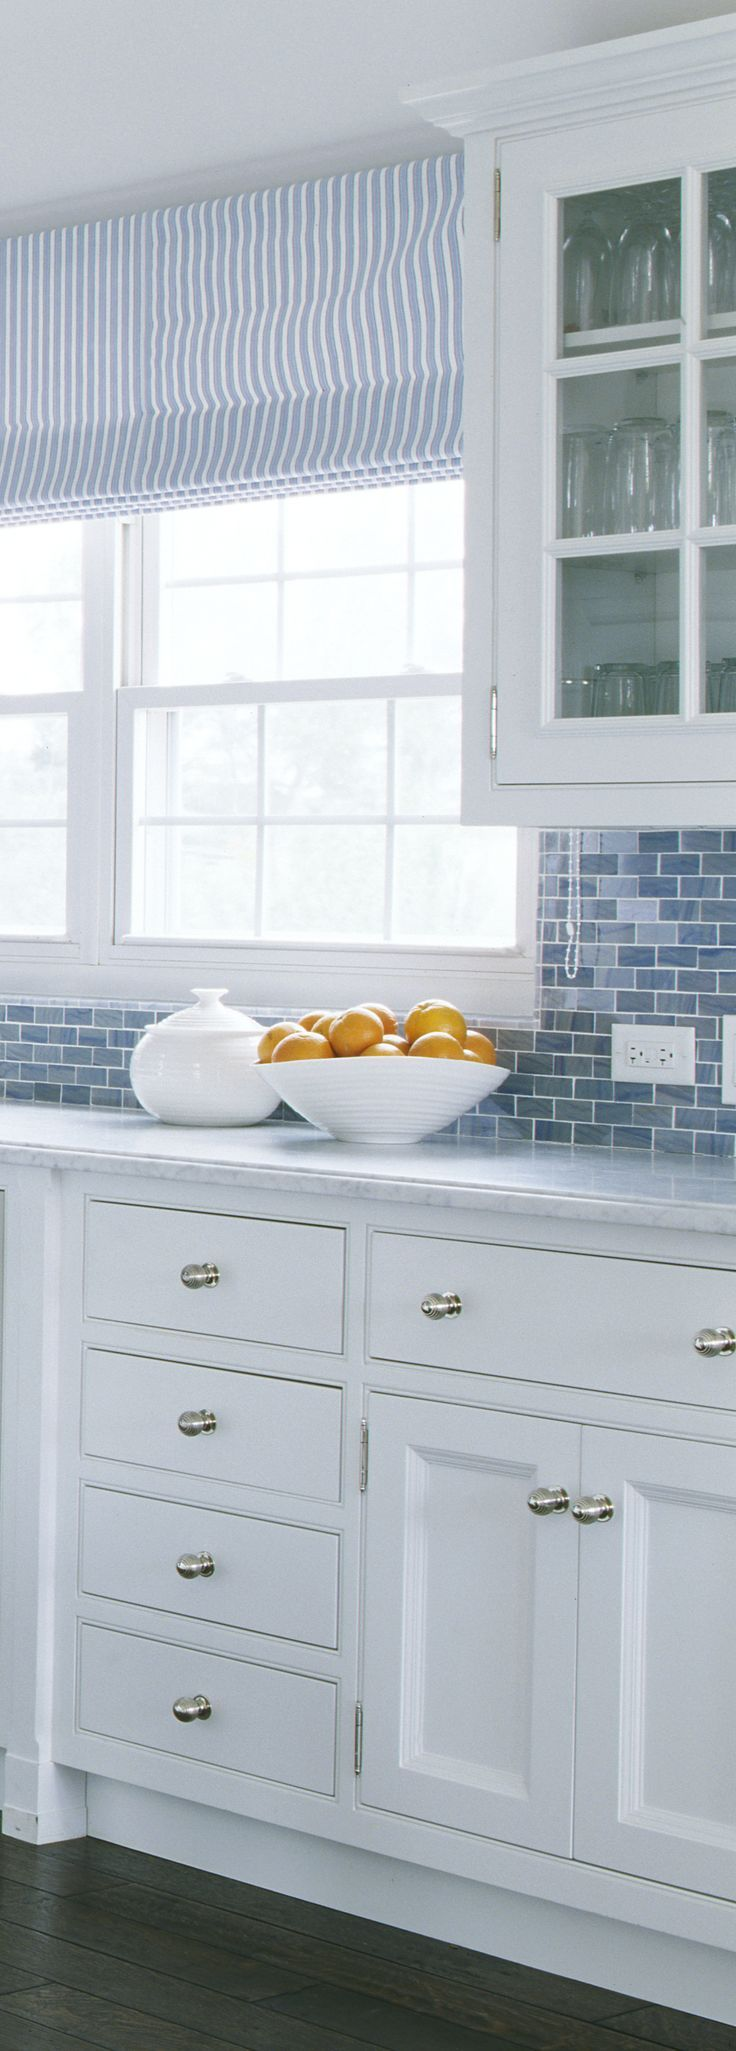 kitchen tiles blue best 25 white cabinets ideas on white kitchen 3314